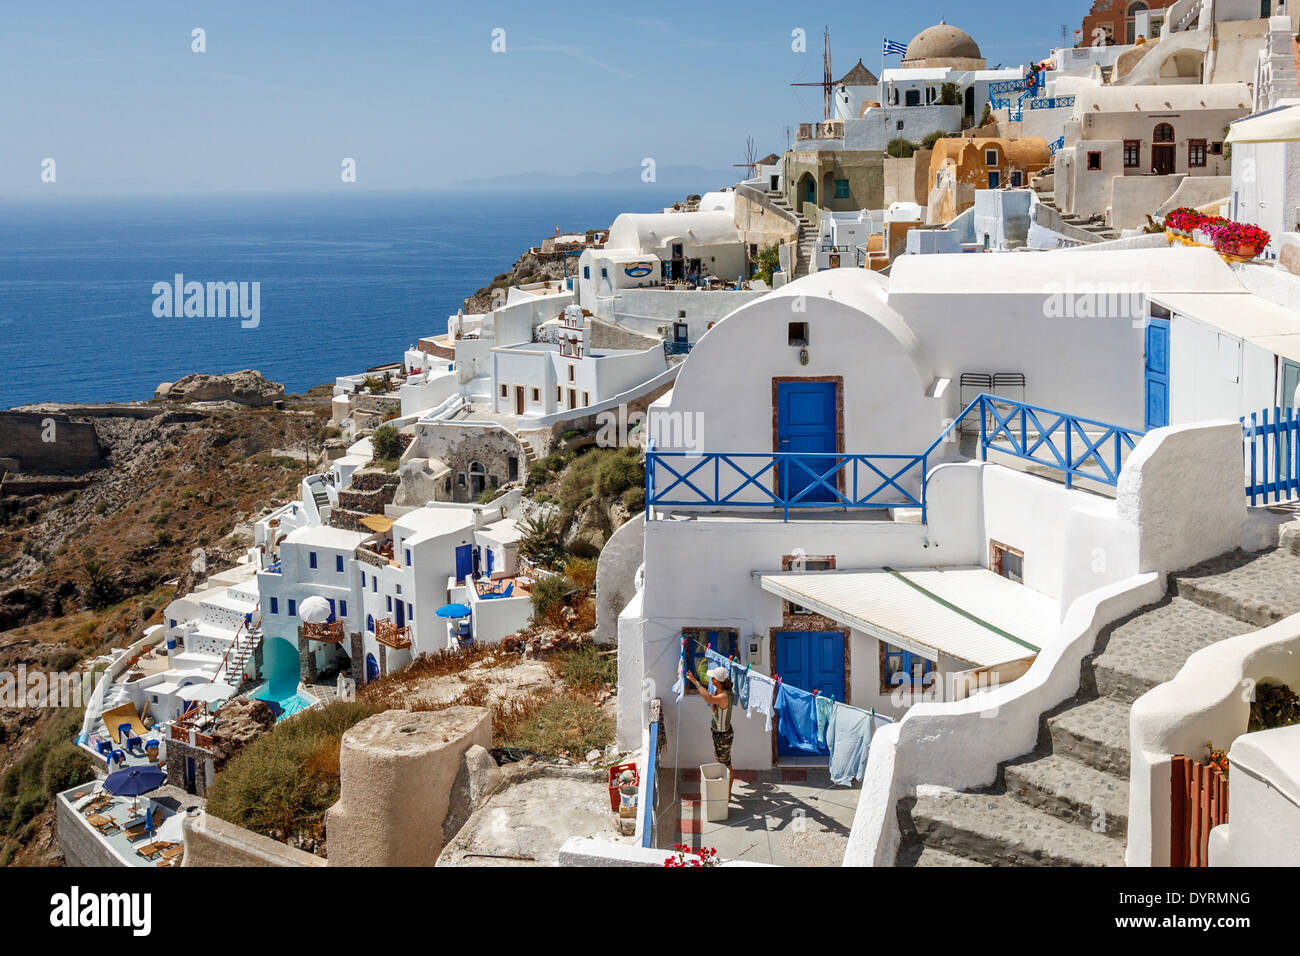 Buy Property In Greece Now